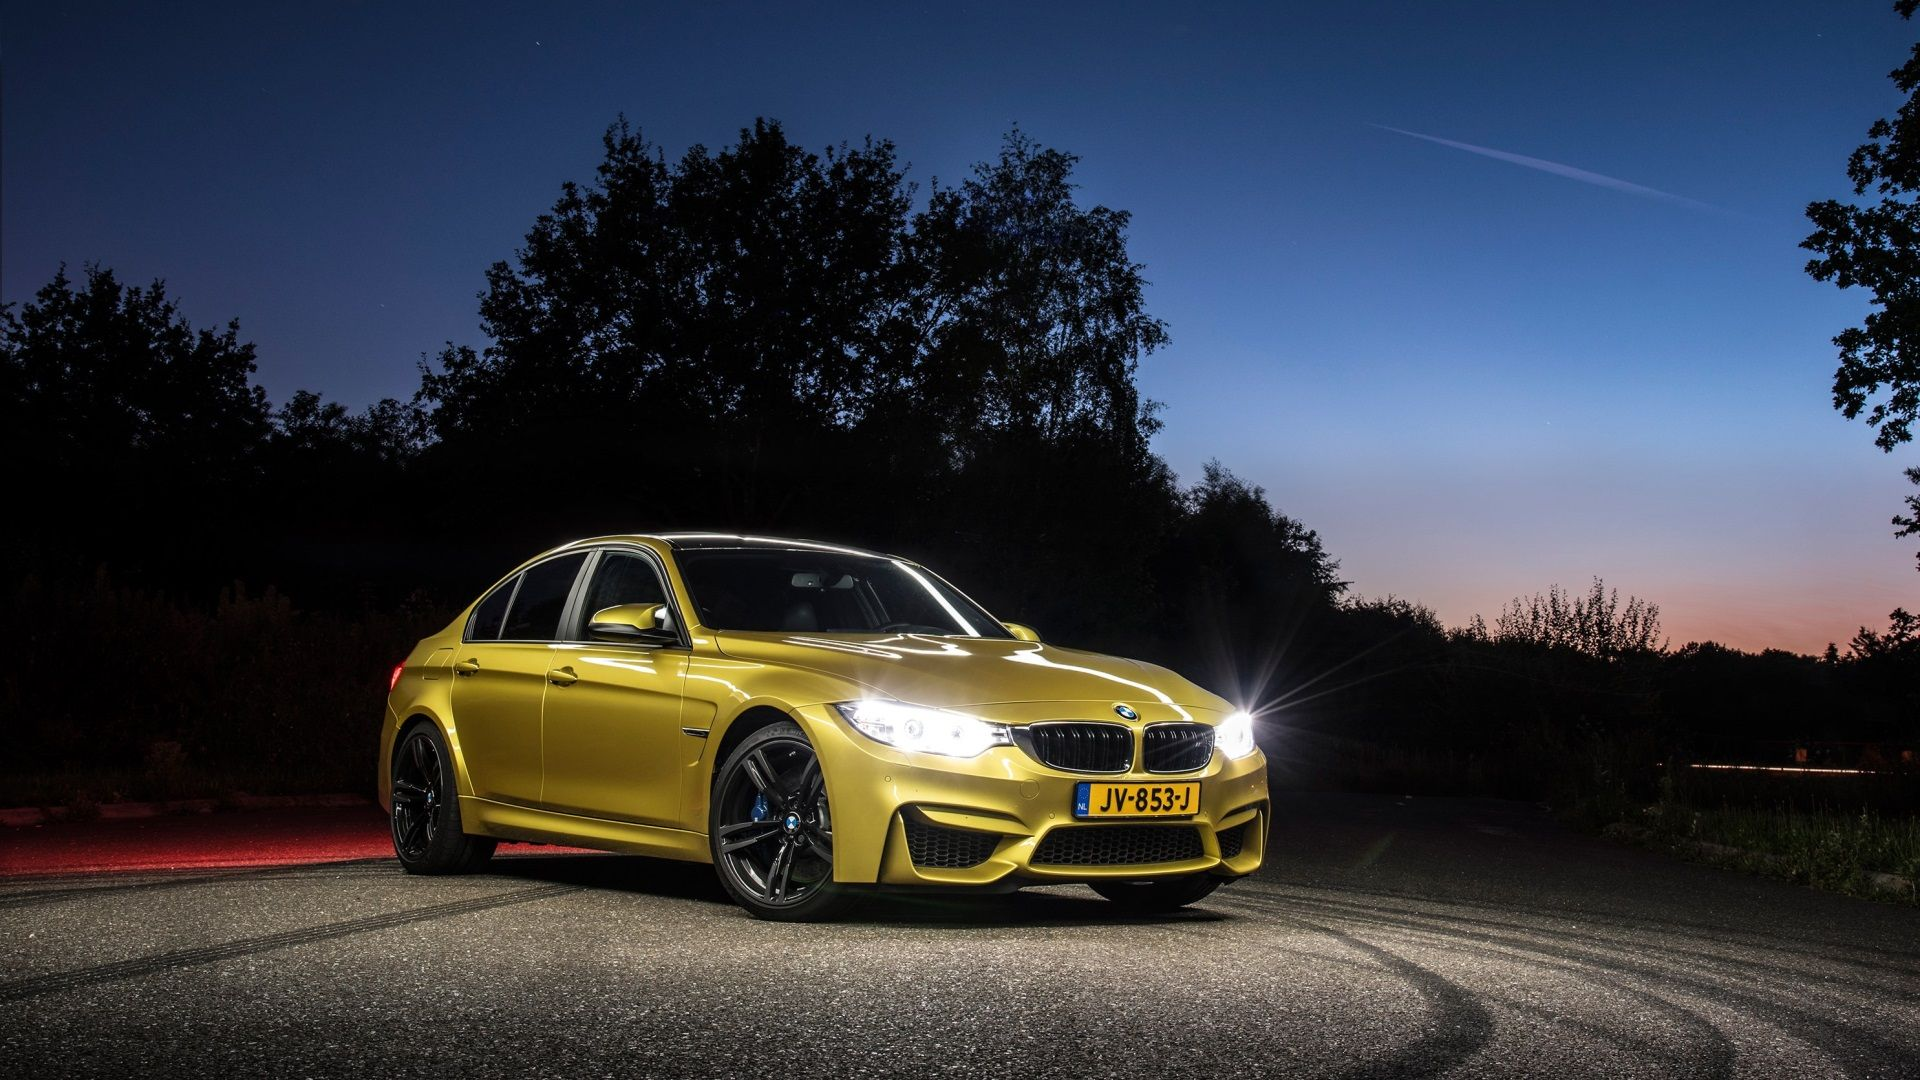 1920x1080 Bmw M3 Download Pictures For Pc Com Imagens Bmw M3